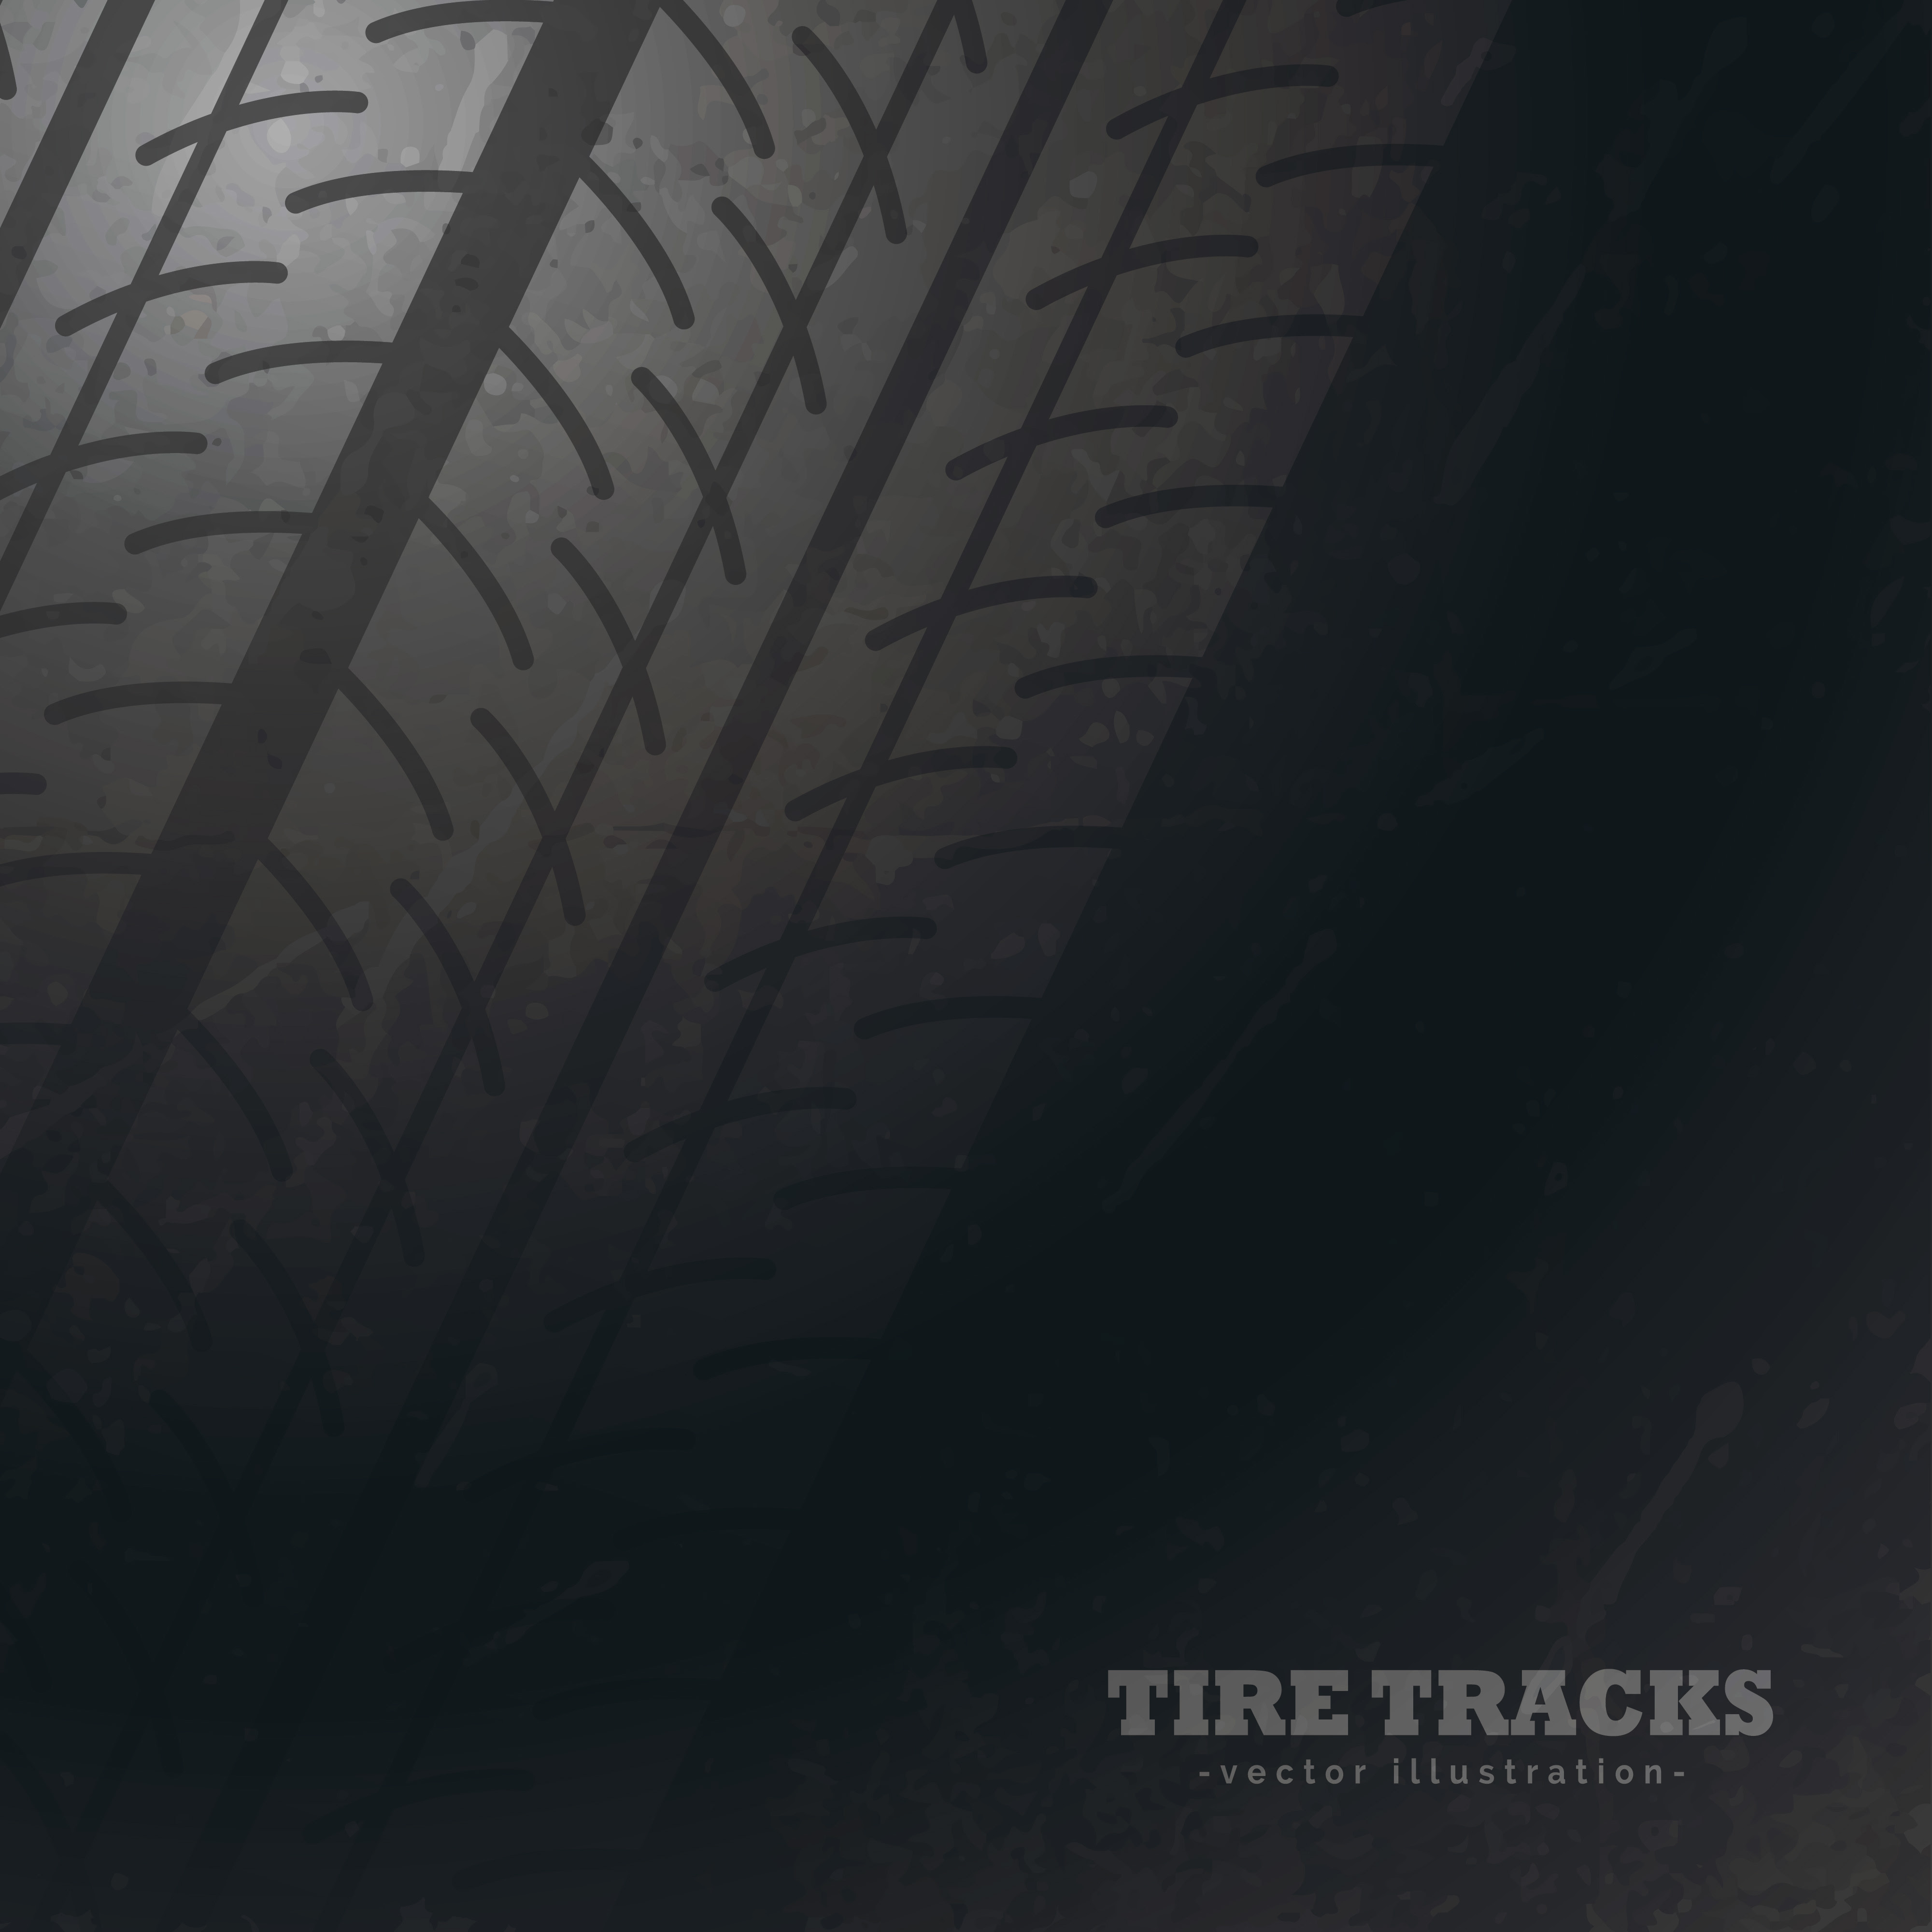 Dark Background With Tire Tracks Marks Download Free Vector Art Stock Graphics Images